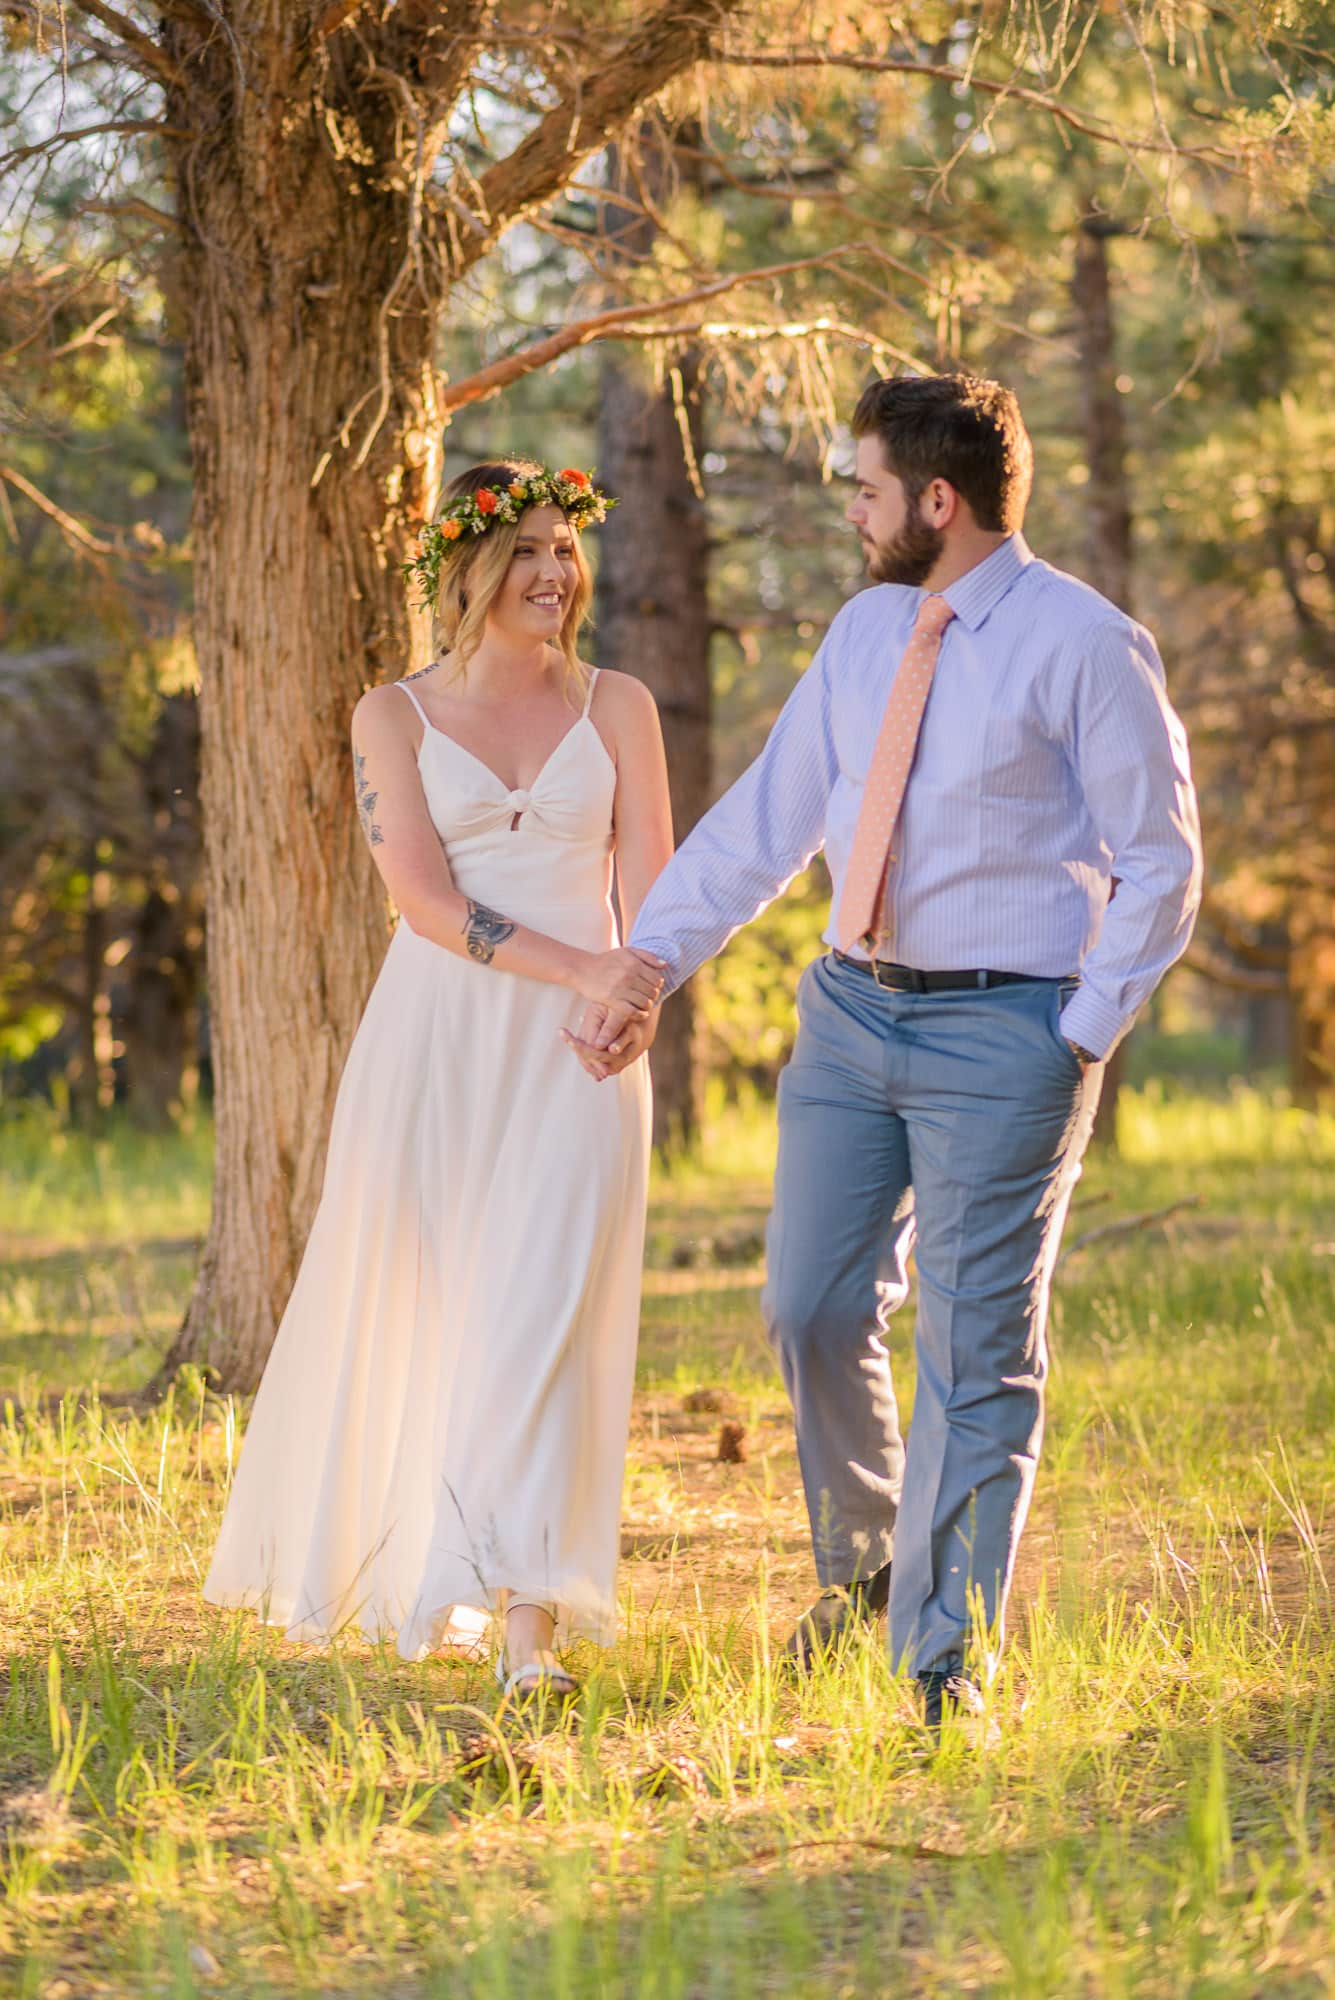 018_Alan_and_Heidi_Kensey_Josh_Big_Bear_Elopement